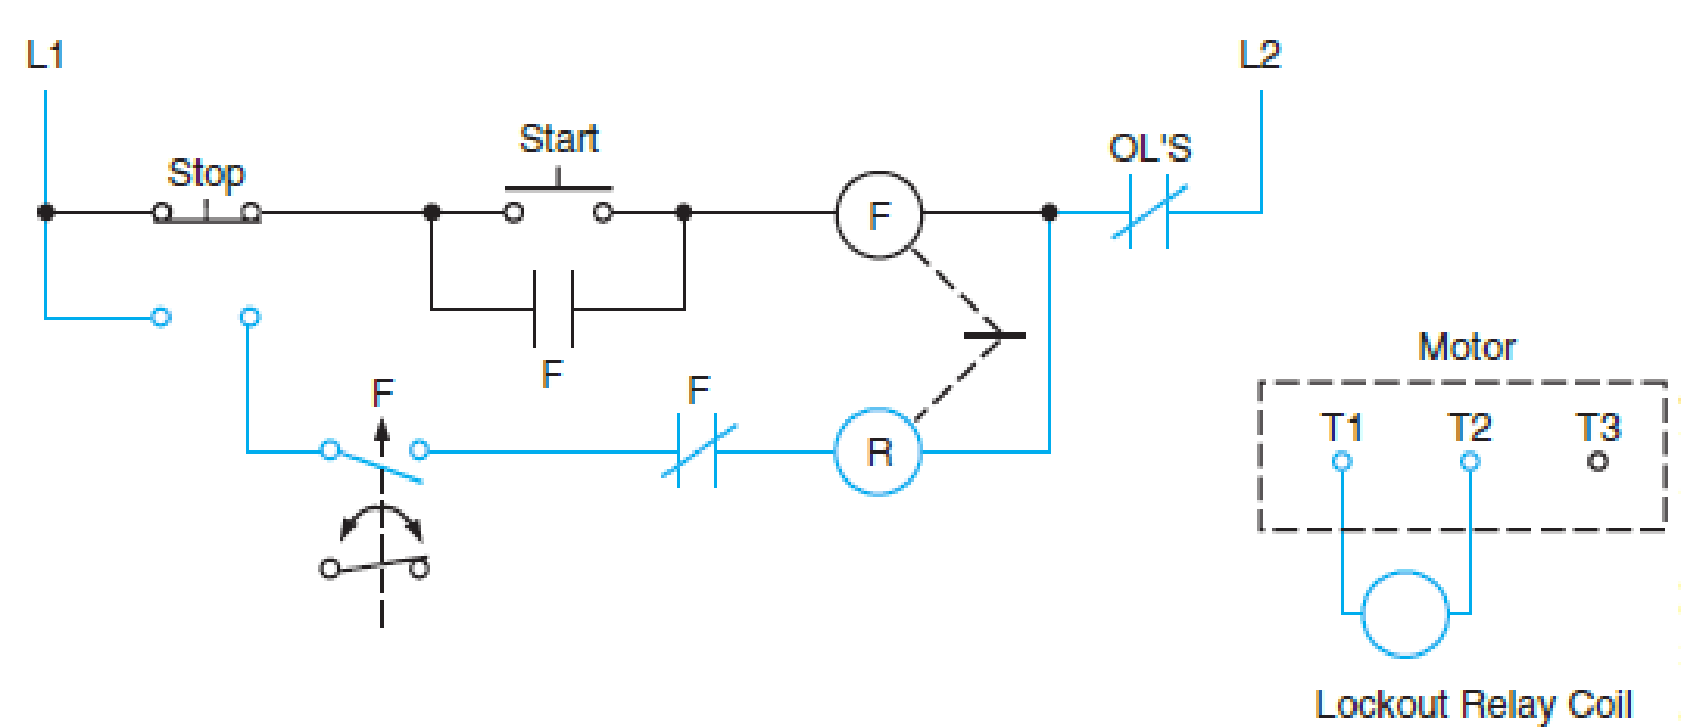 Chapter 48, Problem 8SQ, What alternate methods of stopping are provided by the circuit described in Figure 484? FIG. 484